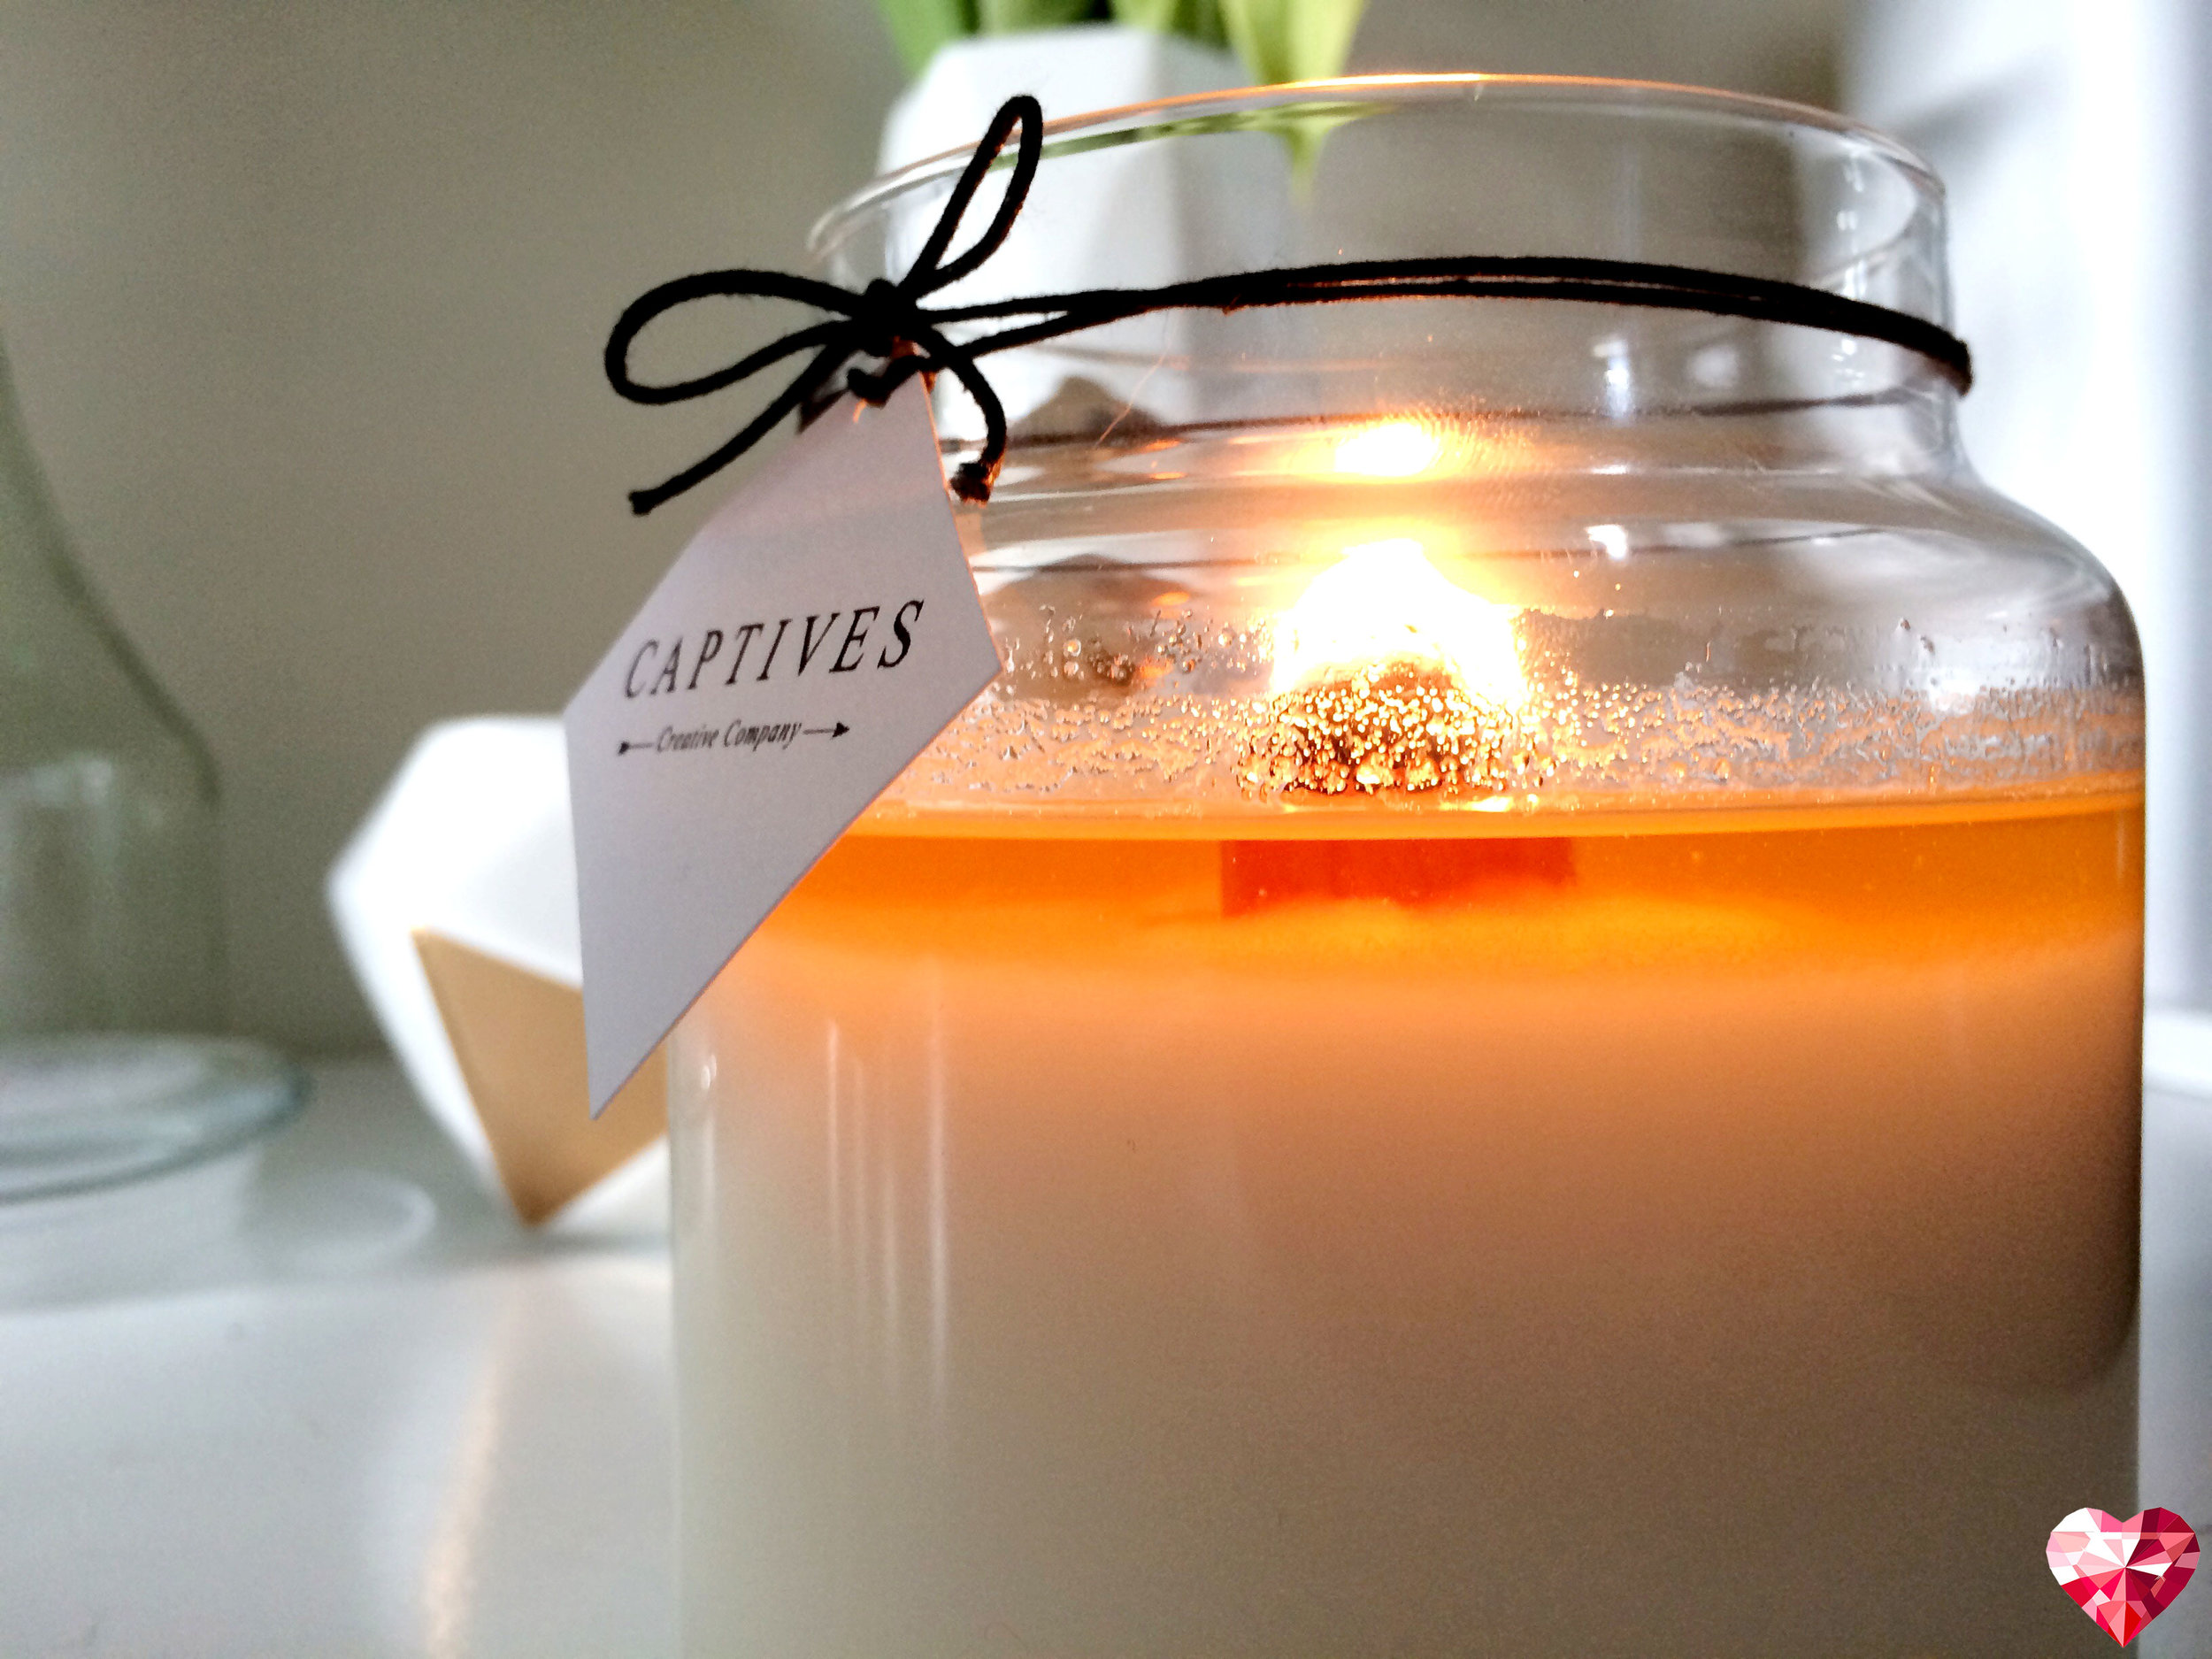 captives-candles3.jpg